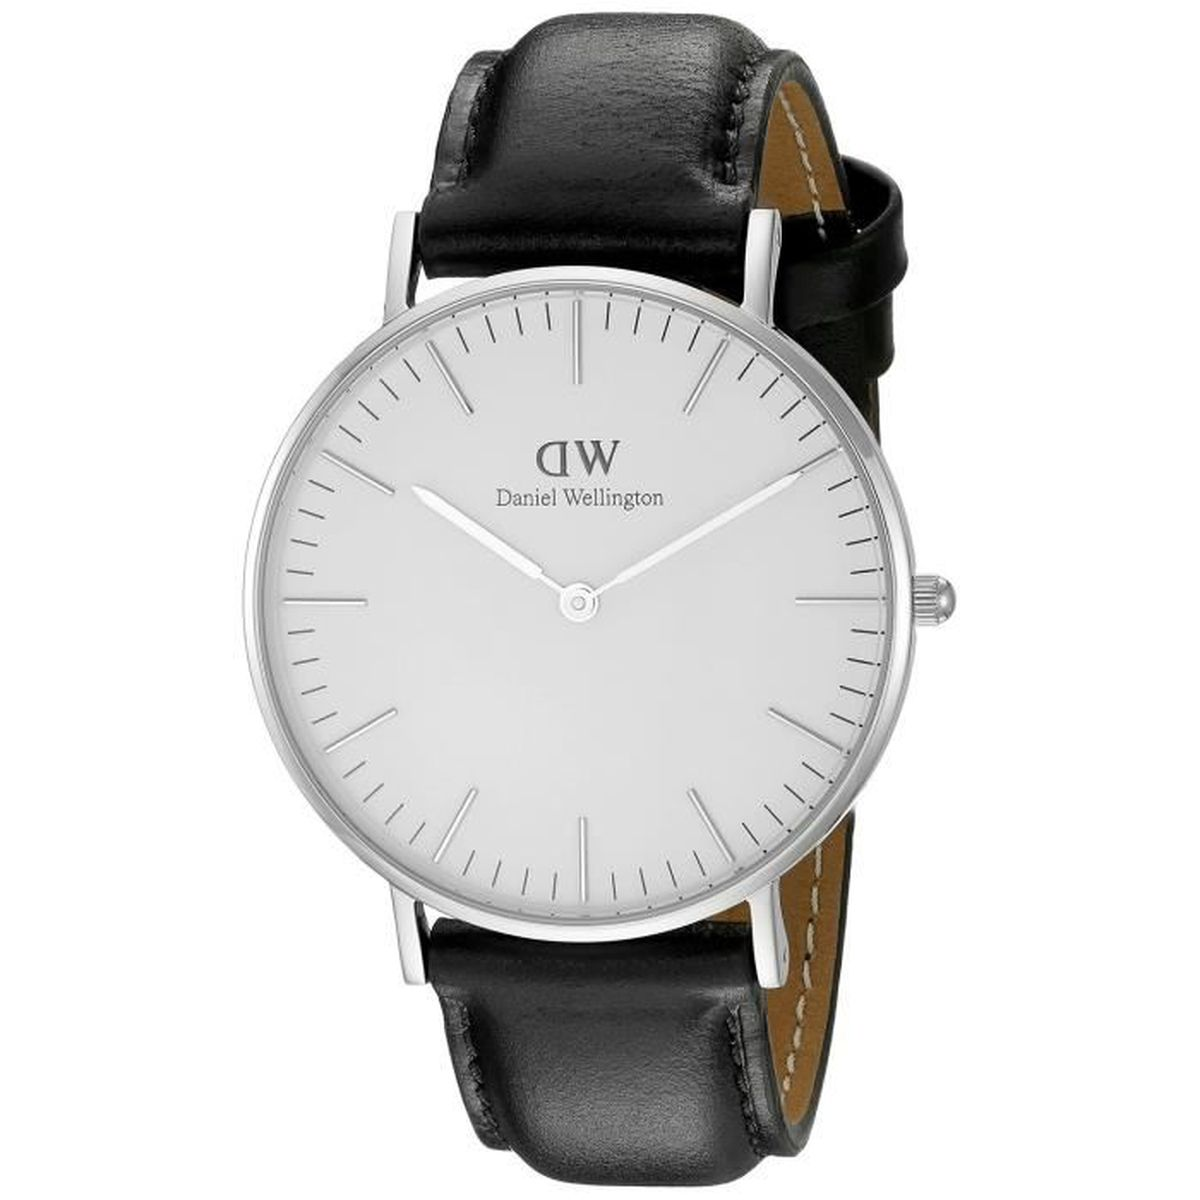 bracelet montre femme daniel wellington achat vente pas cher cdiscount. Black Bedroom Furniture Sets. Home Design Ideas